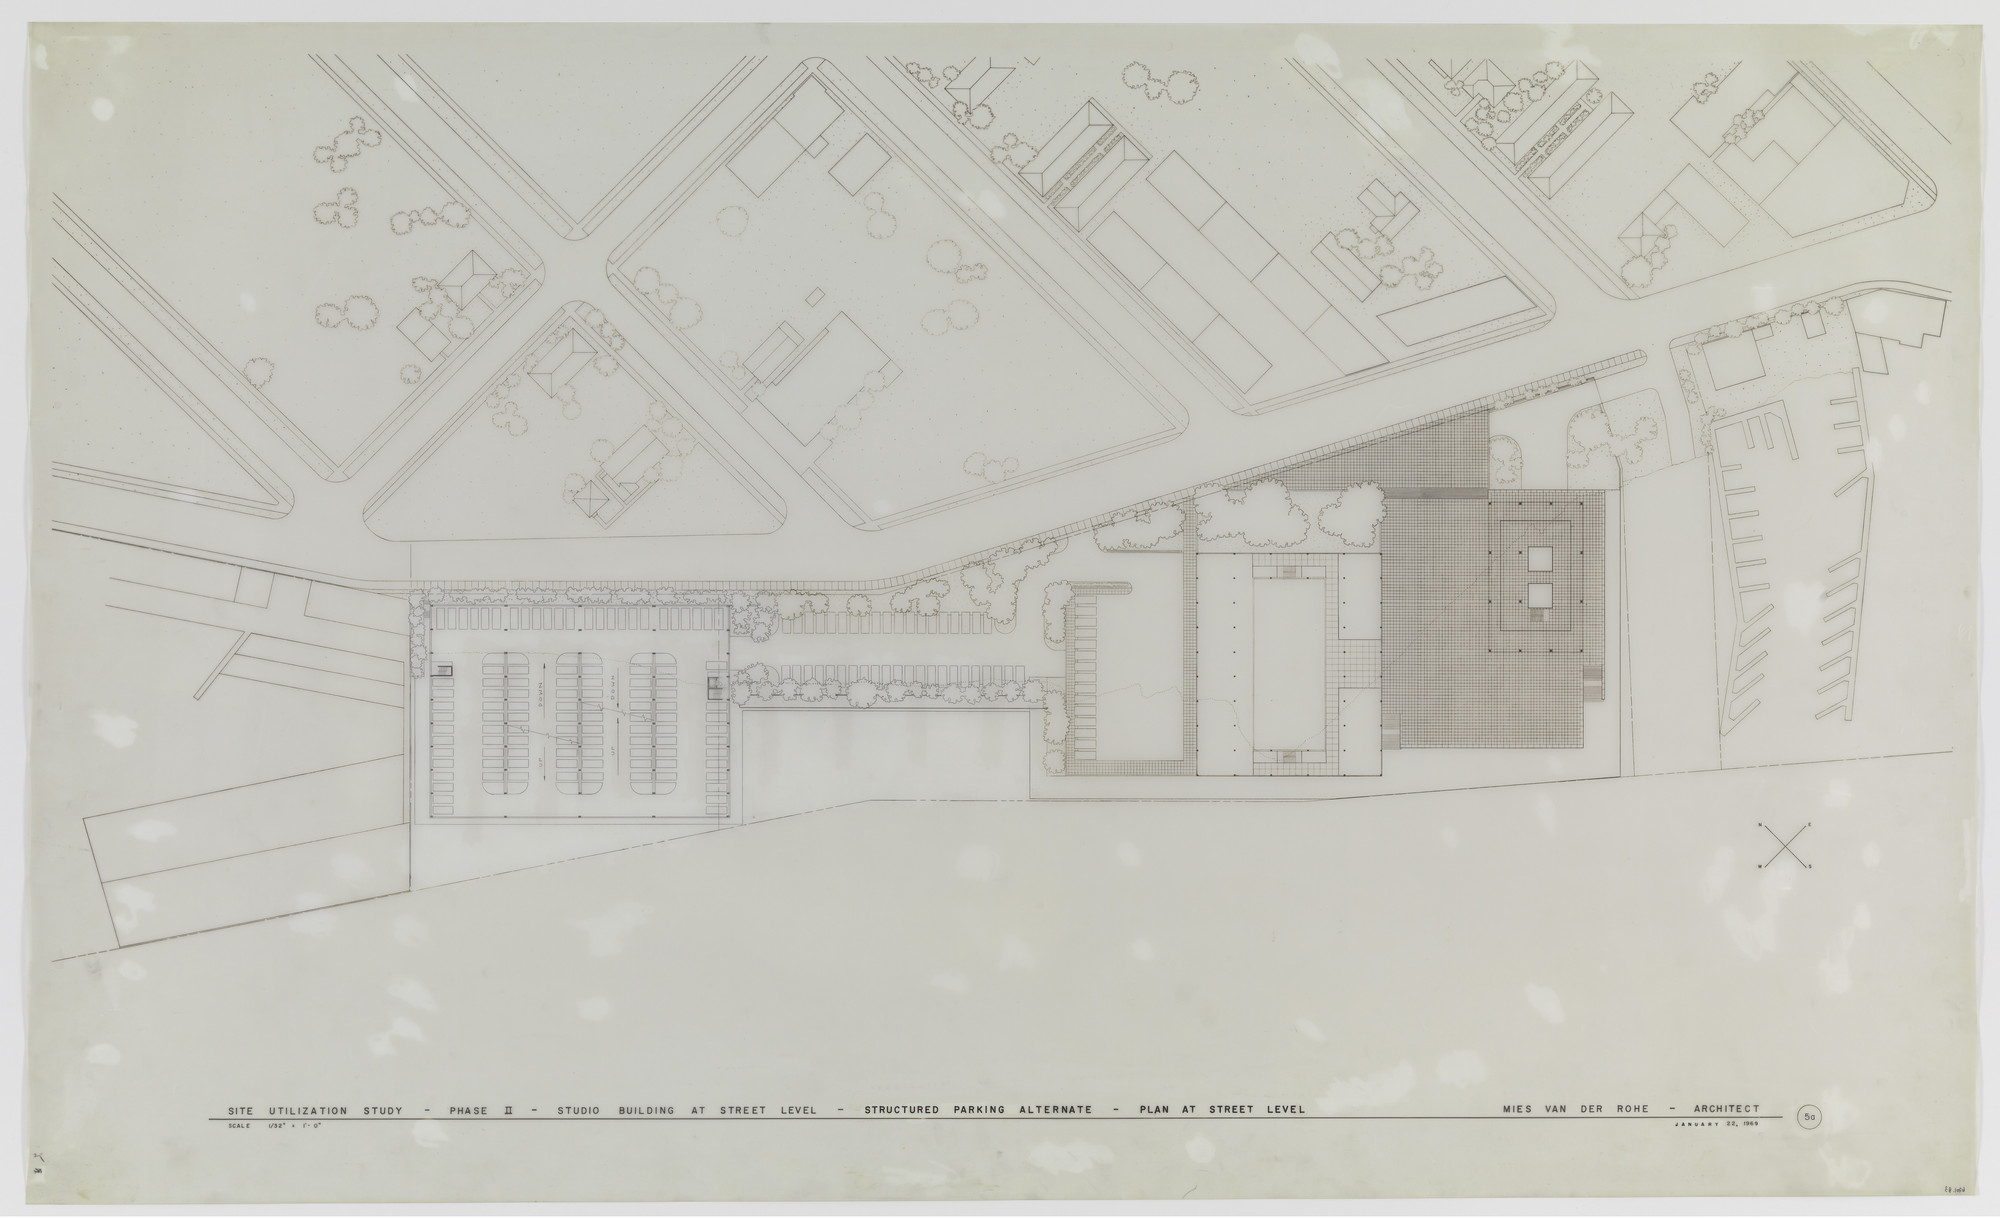 Ludwig Mies van der Rohe. King Broadcasting Company Office Building Project, Seattle, WA, Site utlilization study, phase II.. 1969